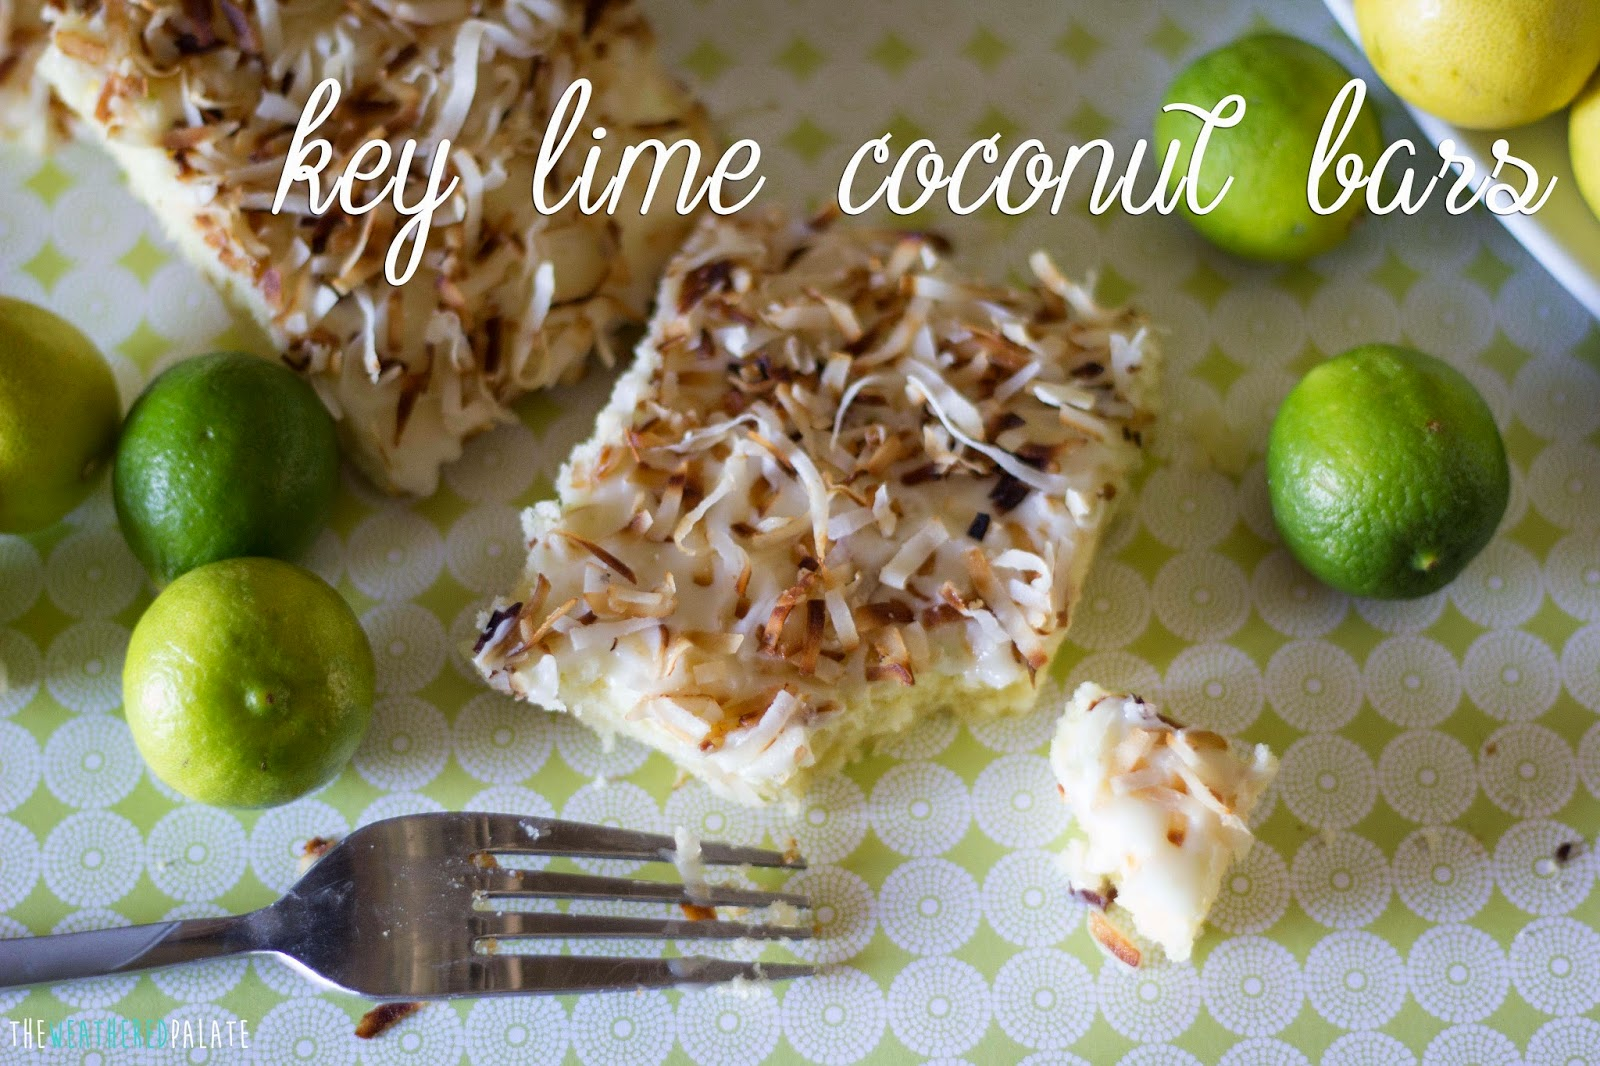 http://www.theweatheredpalate.com/2014/09/key-lime-coconut-bars.html